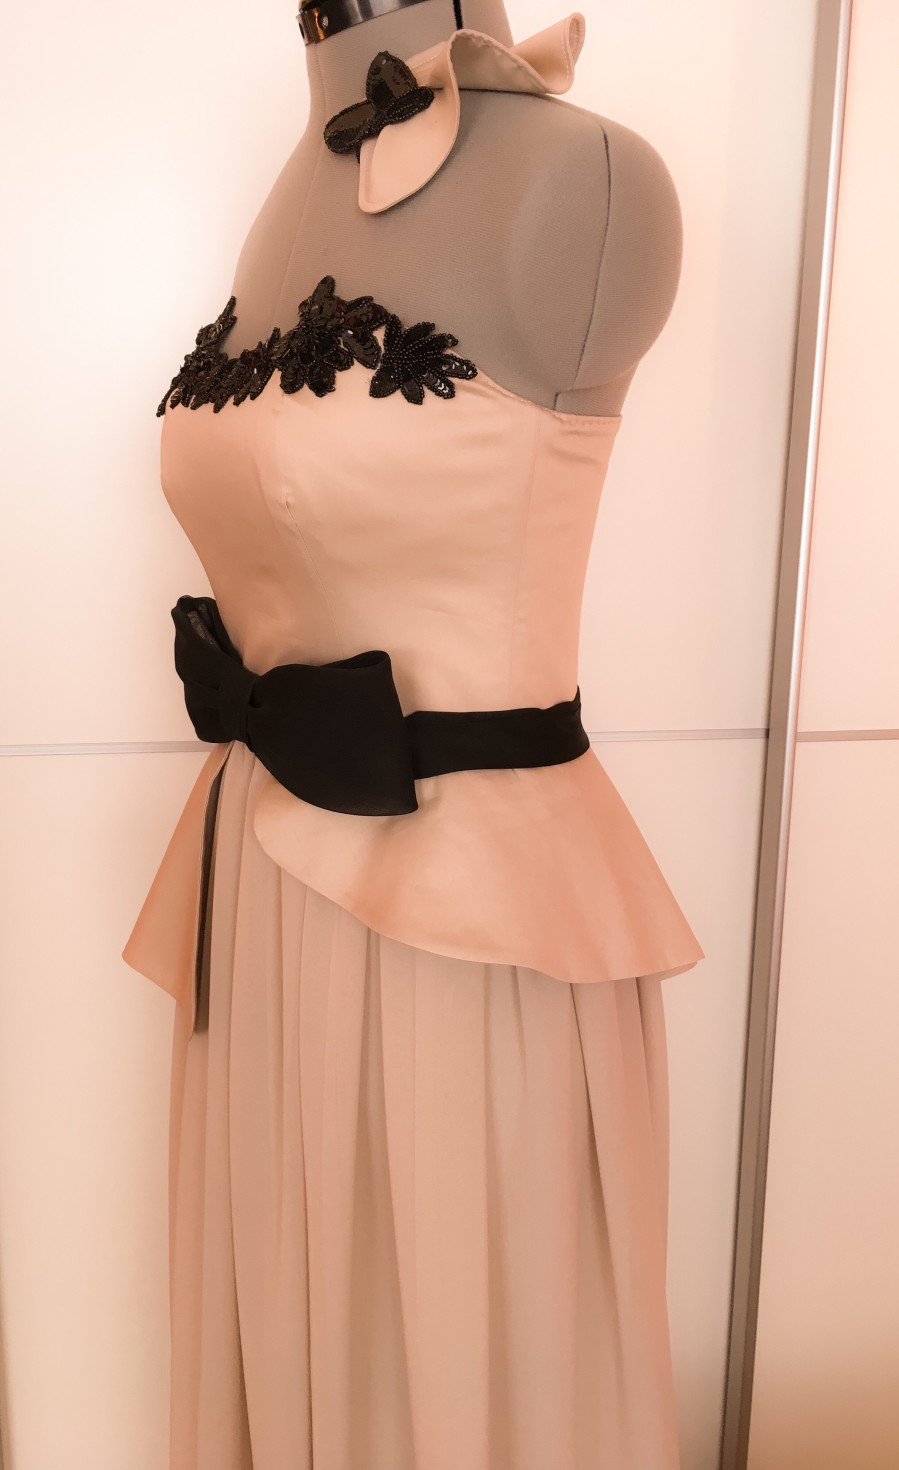 burda style Nutzerkreation claudi292 L.O.B Fashion Award 2019